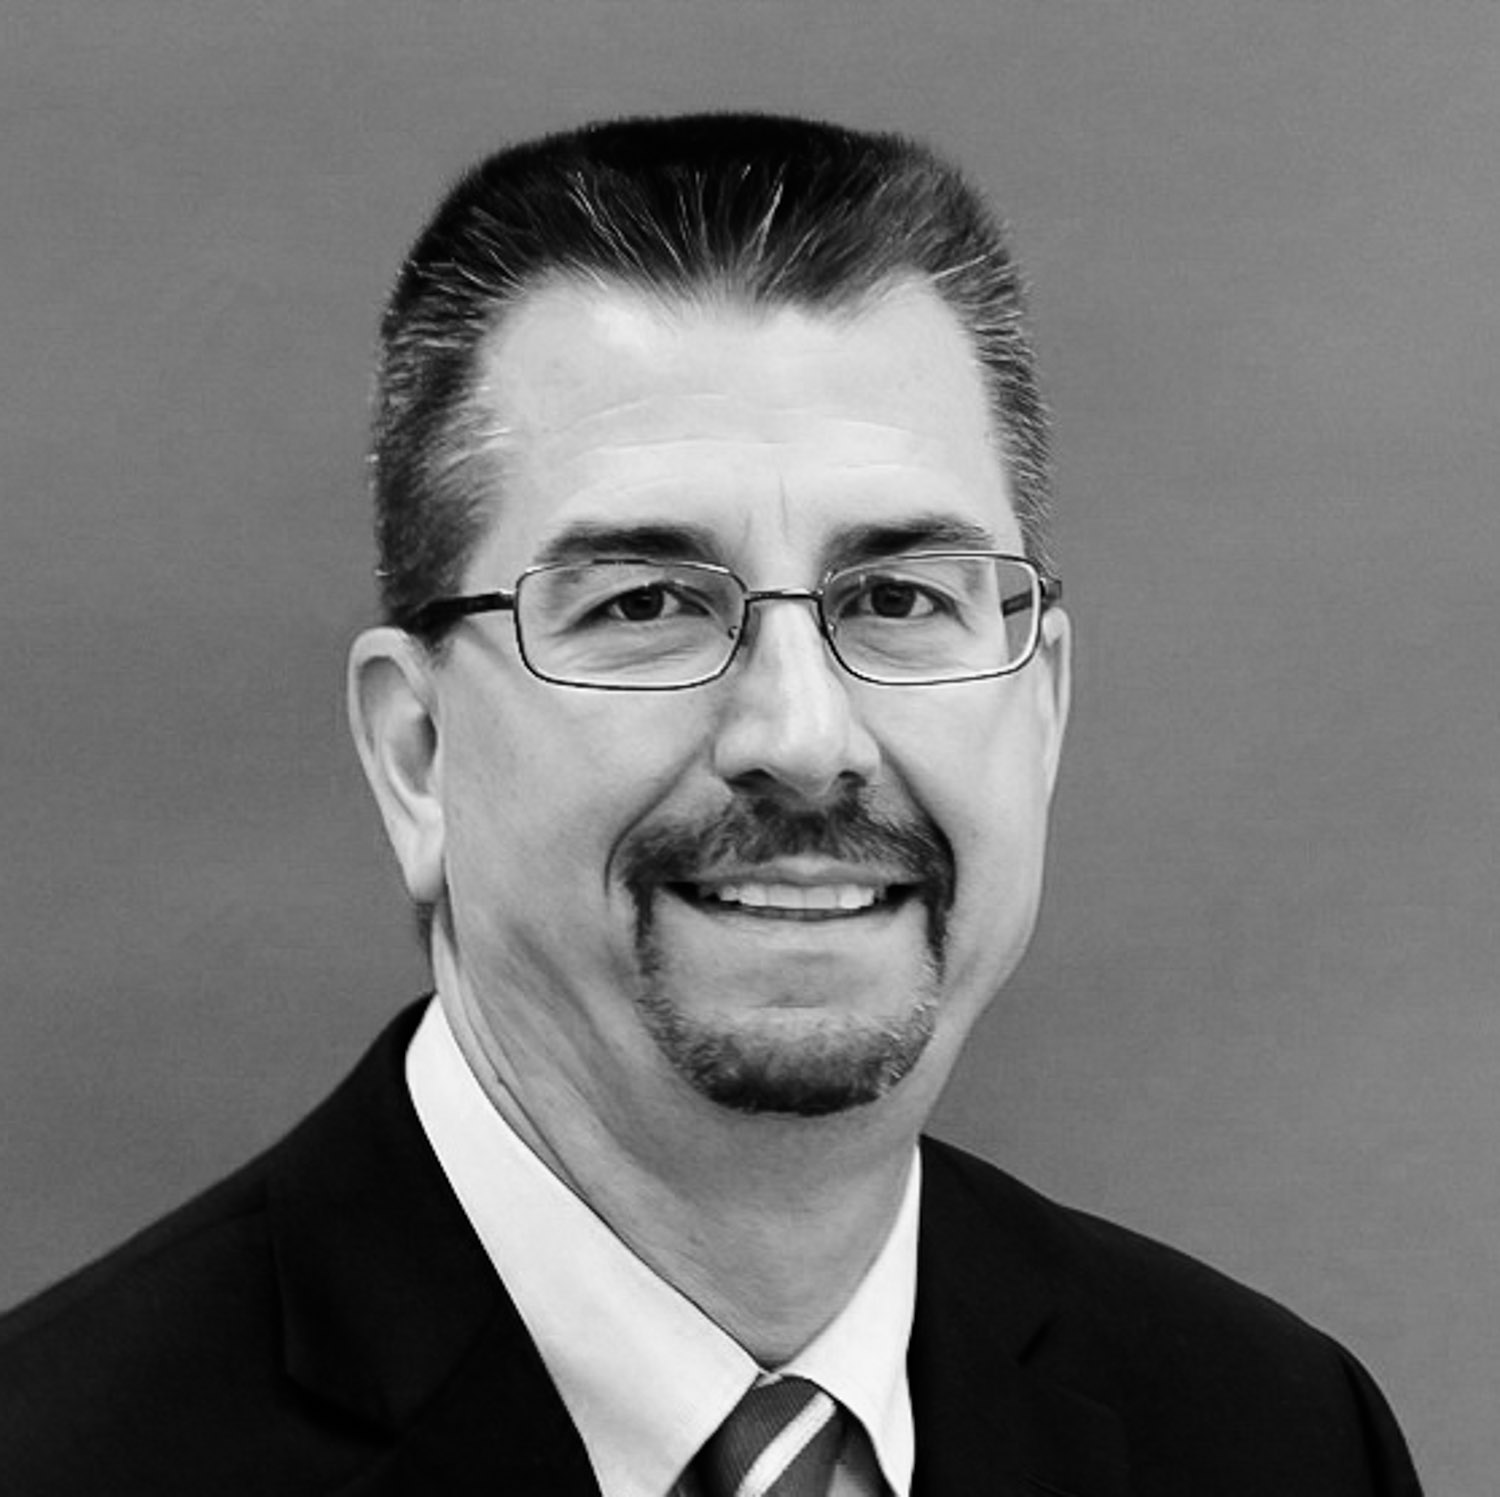 Jeffery Pulse - (STM, Concordia Theological Seminary, Fort Wayne, IN) is Associate Professor of Exegetical Theology, director of Certification and Placement, and Director of Continuing Education at Concordia Theological Seminary in Fort Wayne, IN.